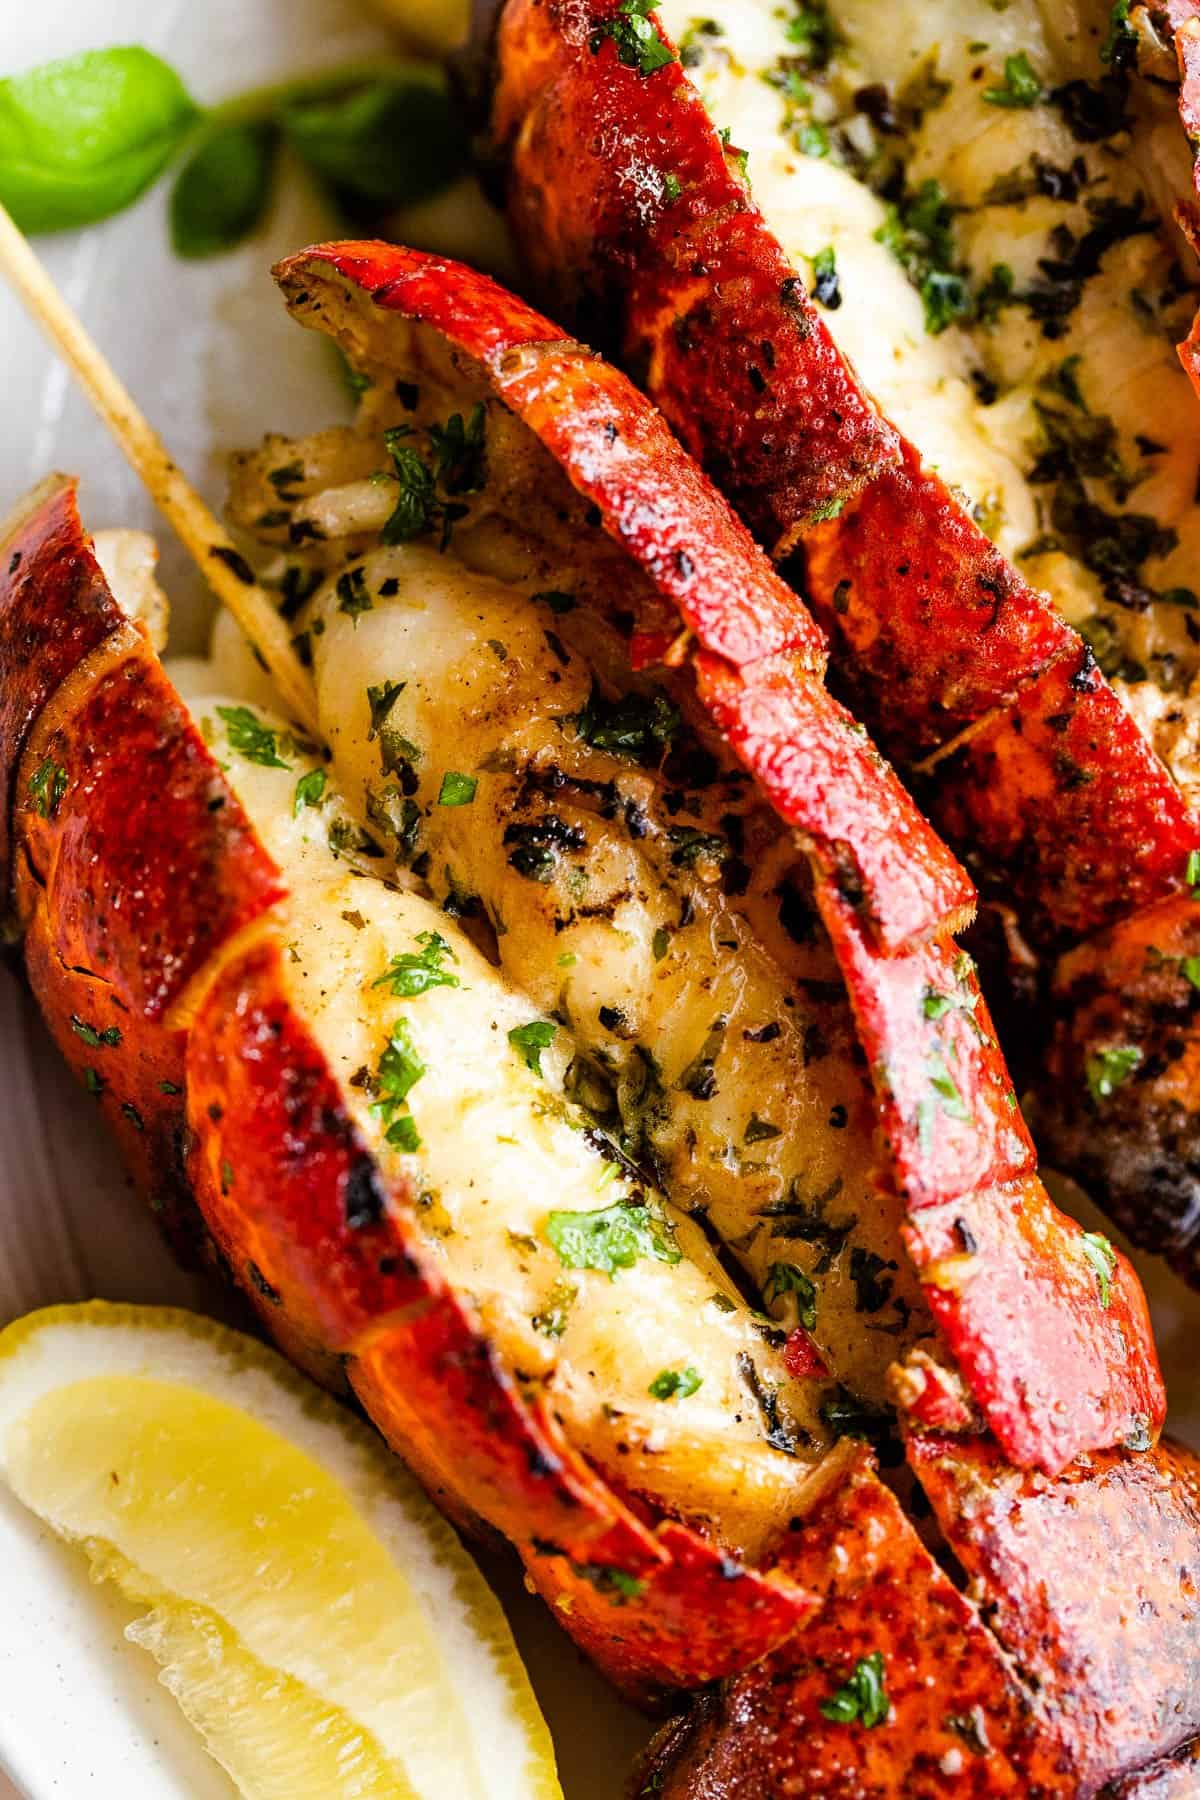 grilled lobster tail topped with parsley and served with lemon wedges